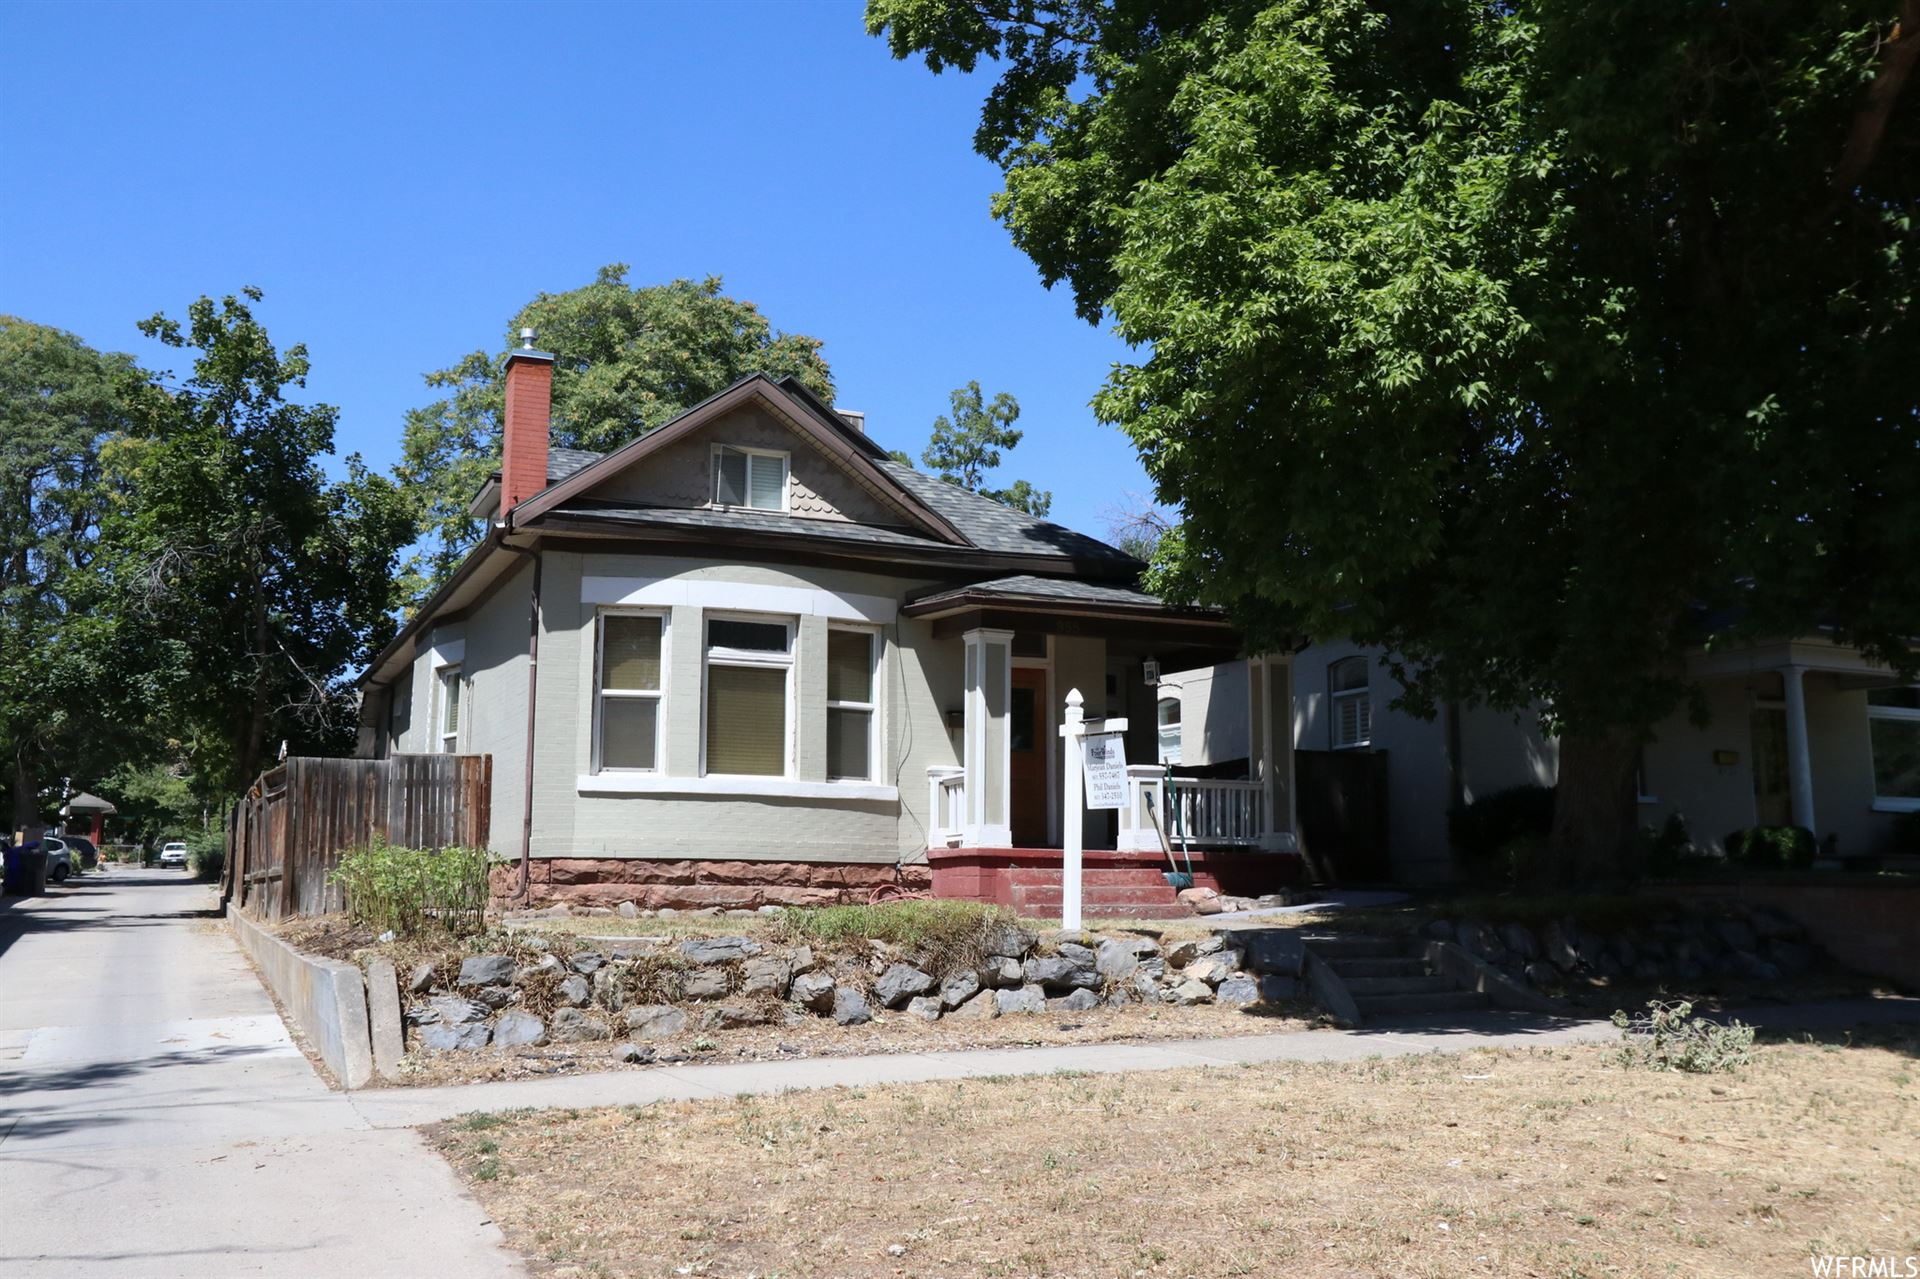 Photo of 955 E 300 S, Salt Lake City, UT 84102 (MLS # 1689177)